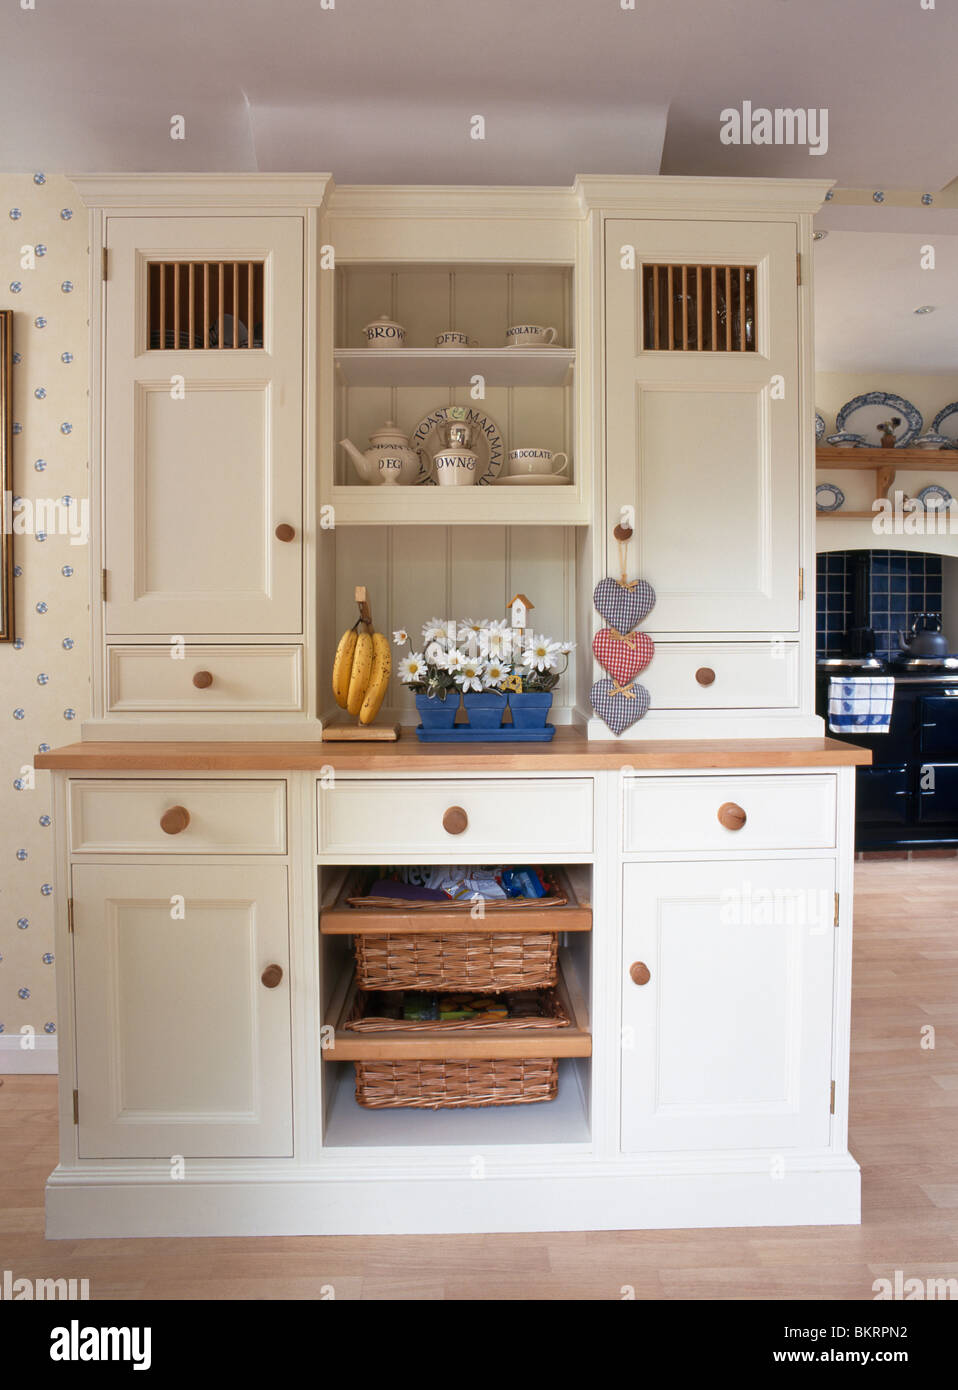 Cream Fitted Kitchen Dresser With Integral Storage Baskets In Country  Kitchen